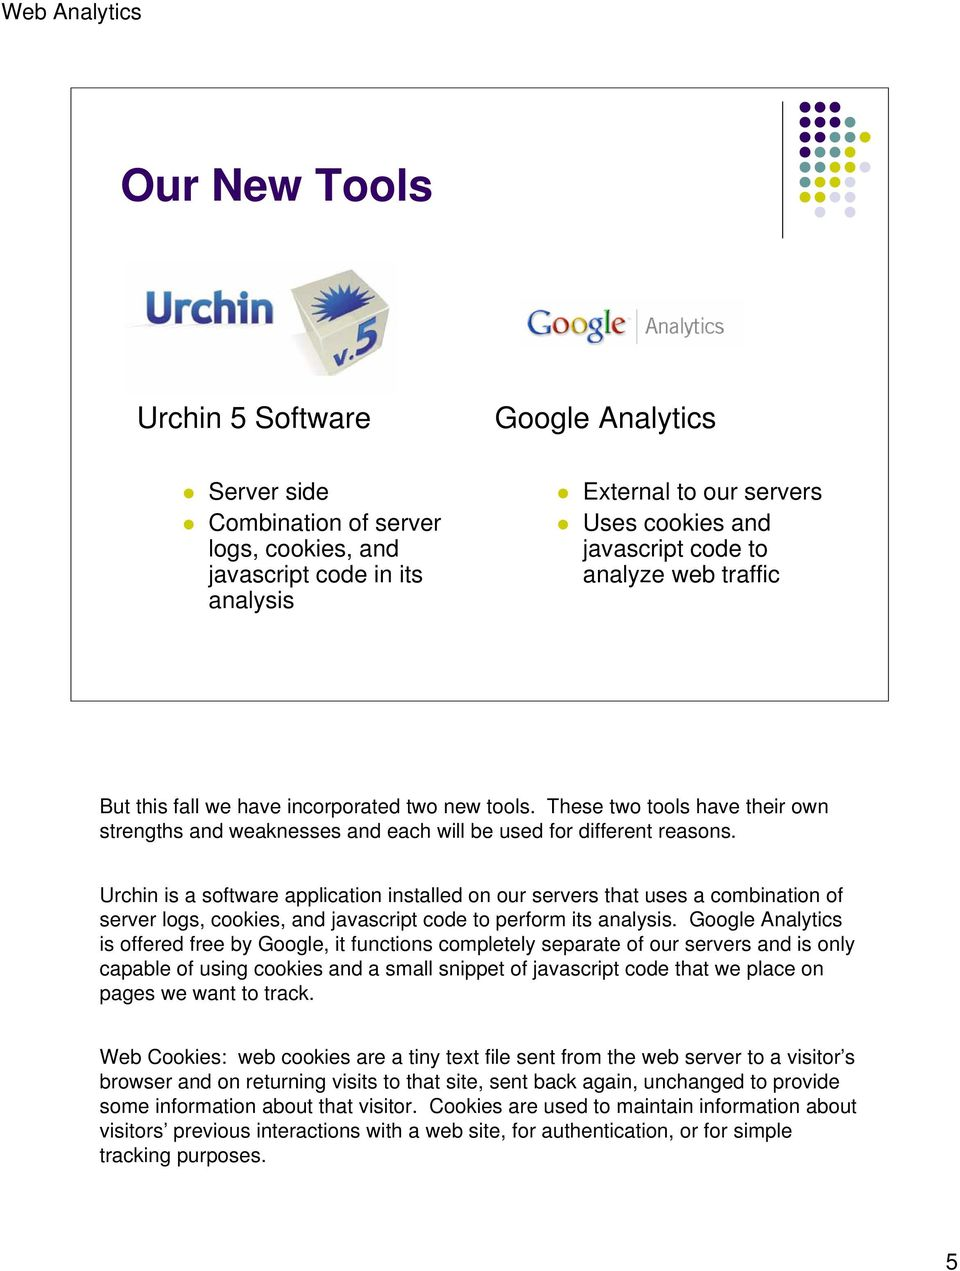 Urchin is a software application installed on our servers that uses a combination of server logs, cookies, and javascript code to perform its analysis.